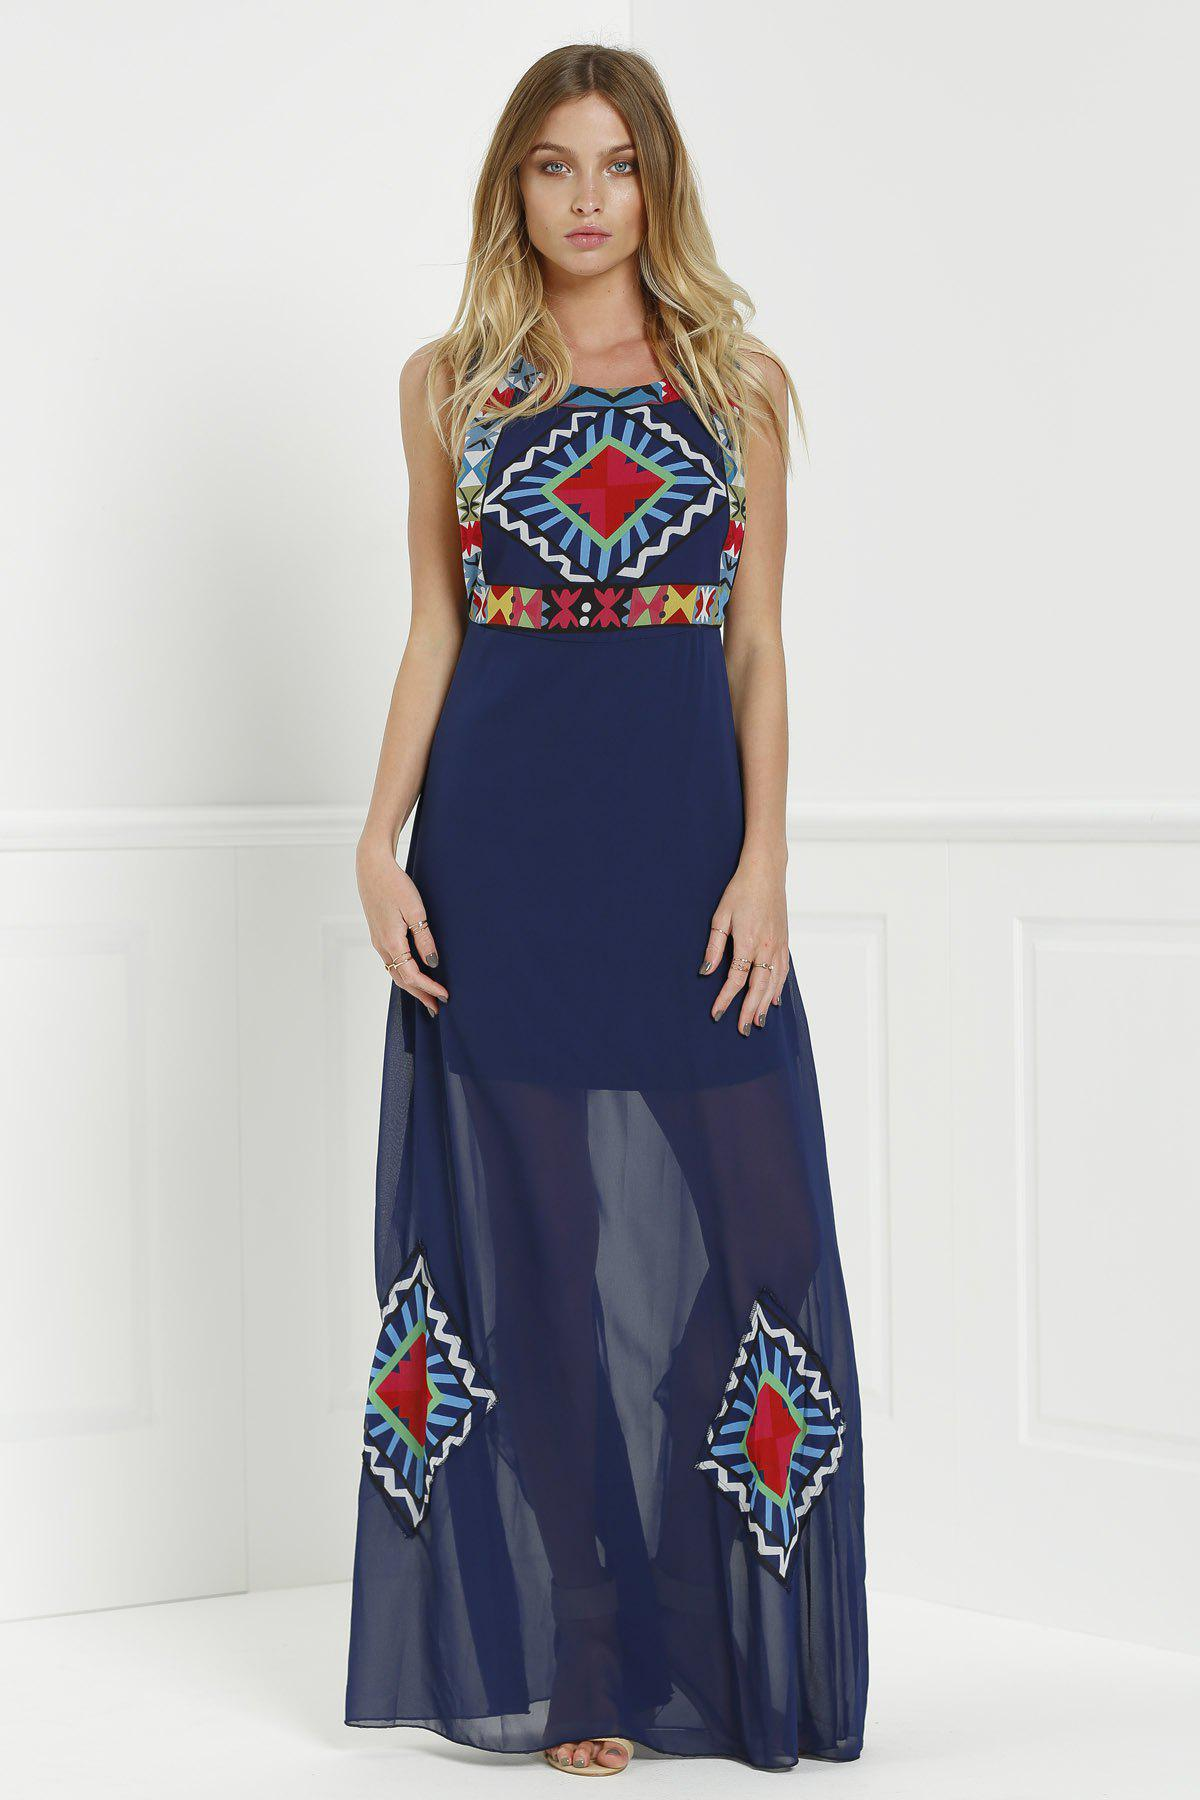 Bohemian Style Jewel Neck Floral Print Color Block Sleeveless Maxi Dress For Women - PURPLISH BLUE L